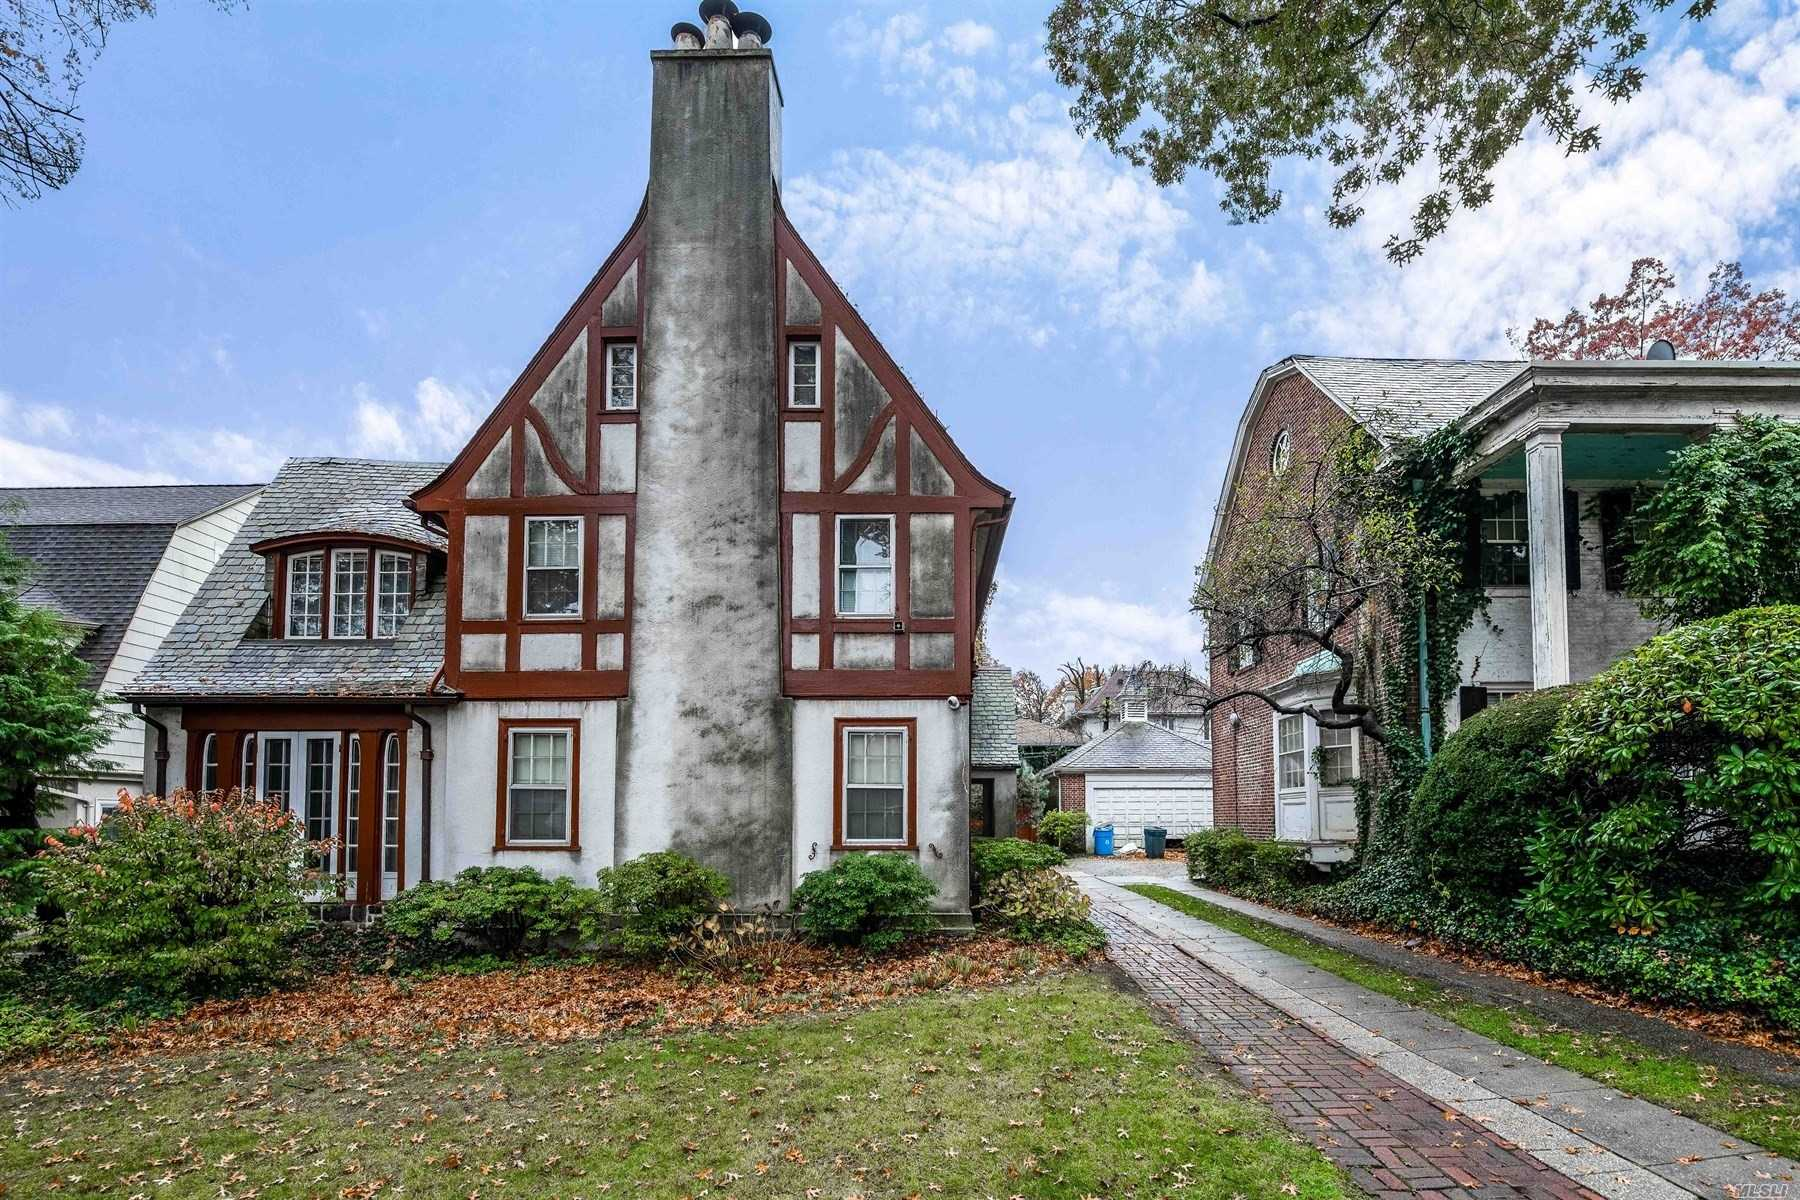 1 Family Tudor With Charm And Character In The Heart Of Kew Gardens - Hardwood Floors - Elegant Original Woodwork And Exquisite Stained Glass Windows - 2 Fireplaces - Slate Roof - Herb And Vegetable Garden - Back Up Generator Connected To The Gas Line (2Years Old) - Surveillance Camera - 3 Ceiling Fans - Chandelier In Dining Room Excluded - Wine Cellar In The Basement